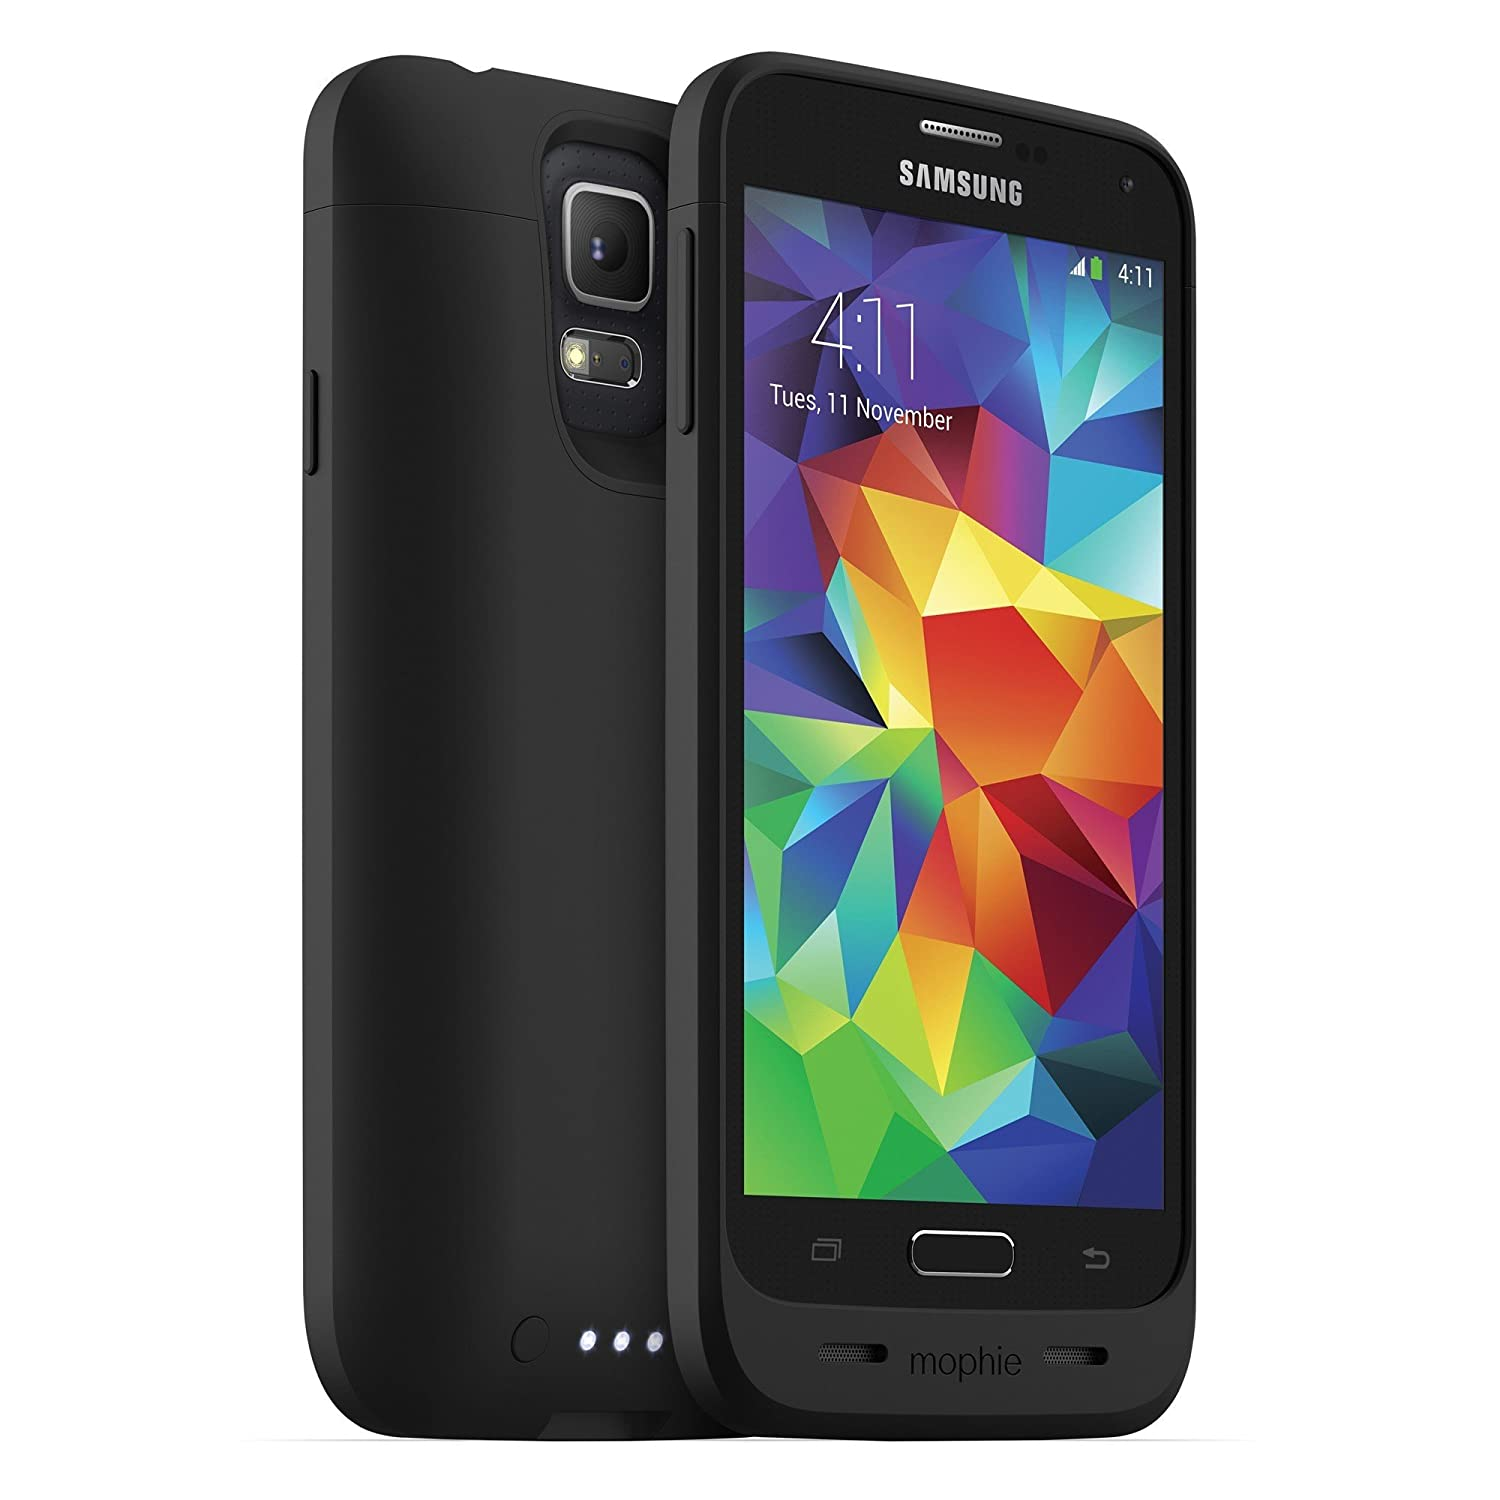 mophie Juice Pack for Samsung Galaxy S5 (3,000mAh) - Black (Renewed)